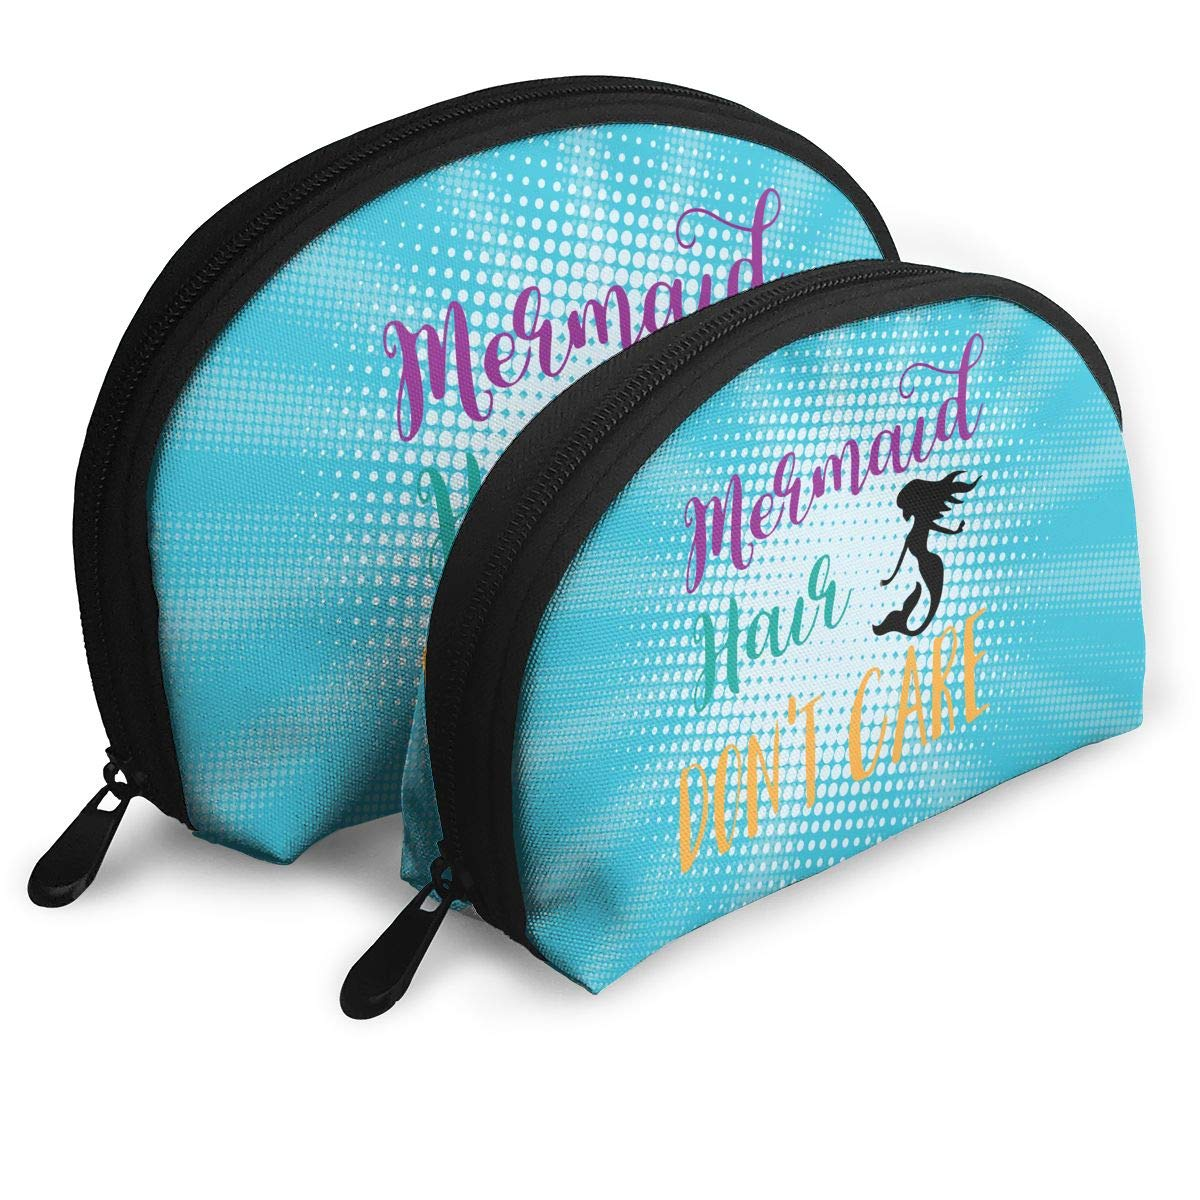 Gol Saly Funny Mermaid Hair Don't Care SVG File Pack of 2 Portable Travel Makeup Cosmetic Bags Organizer Multifunction Clutch Pouch Case Kit Toiletry Bags for Women